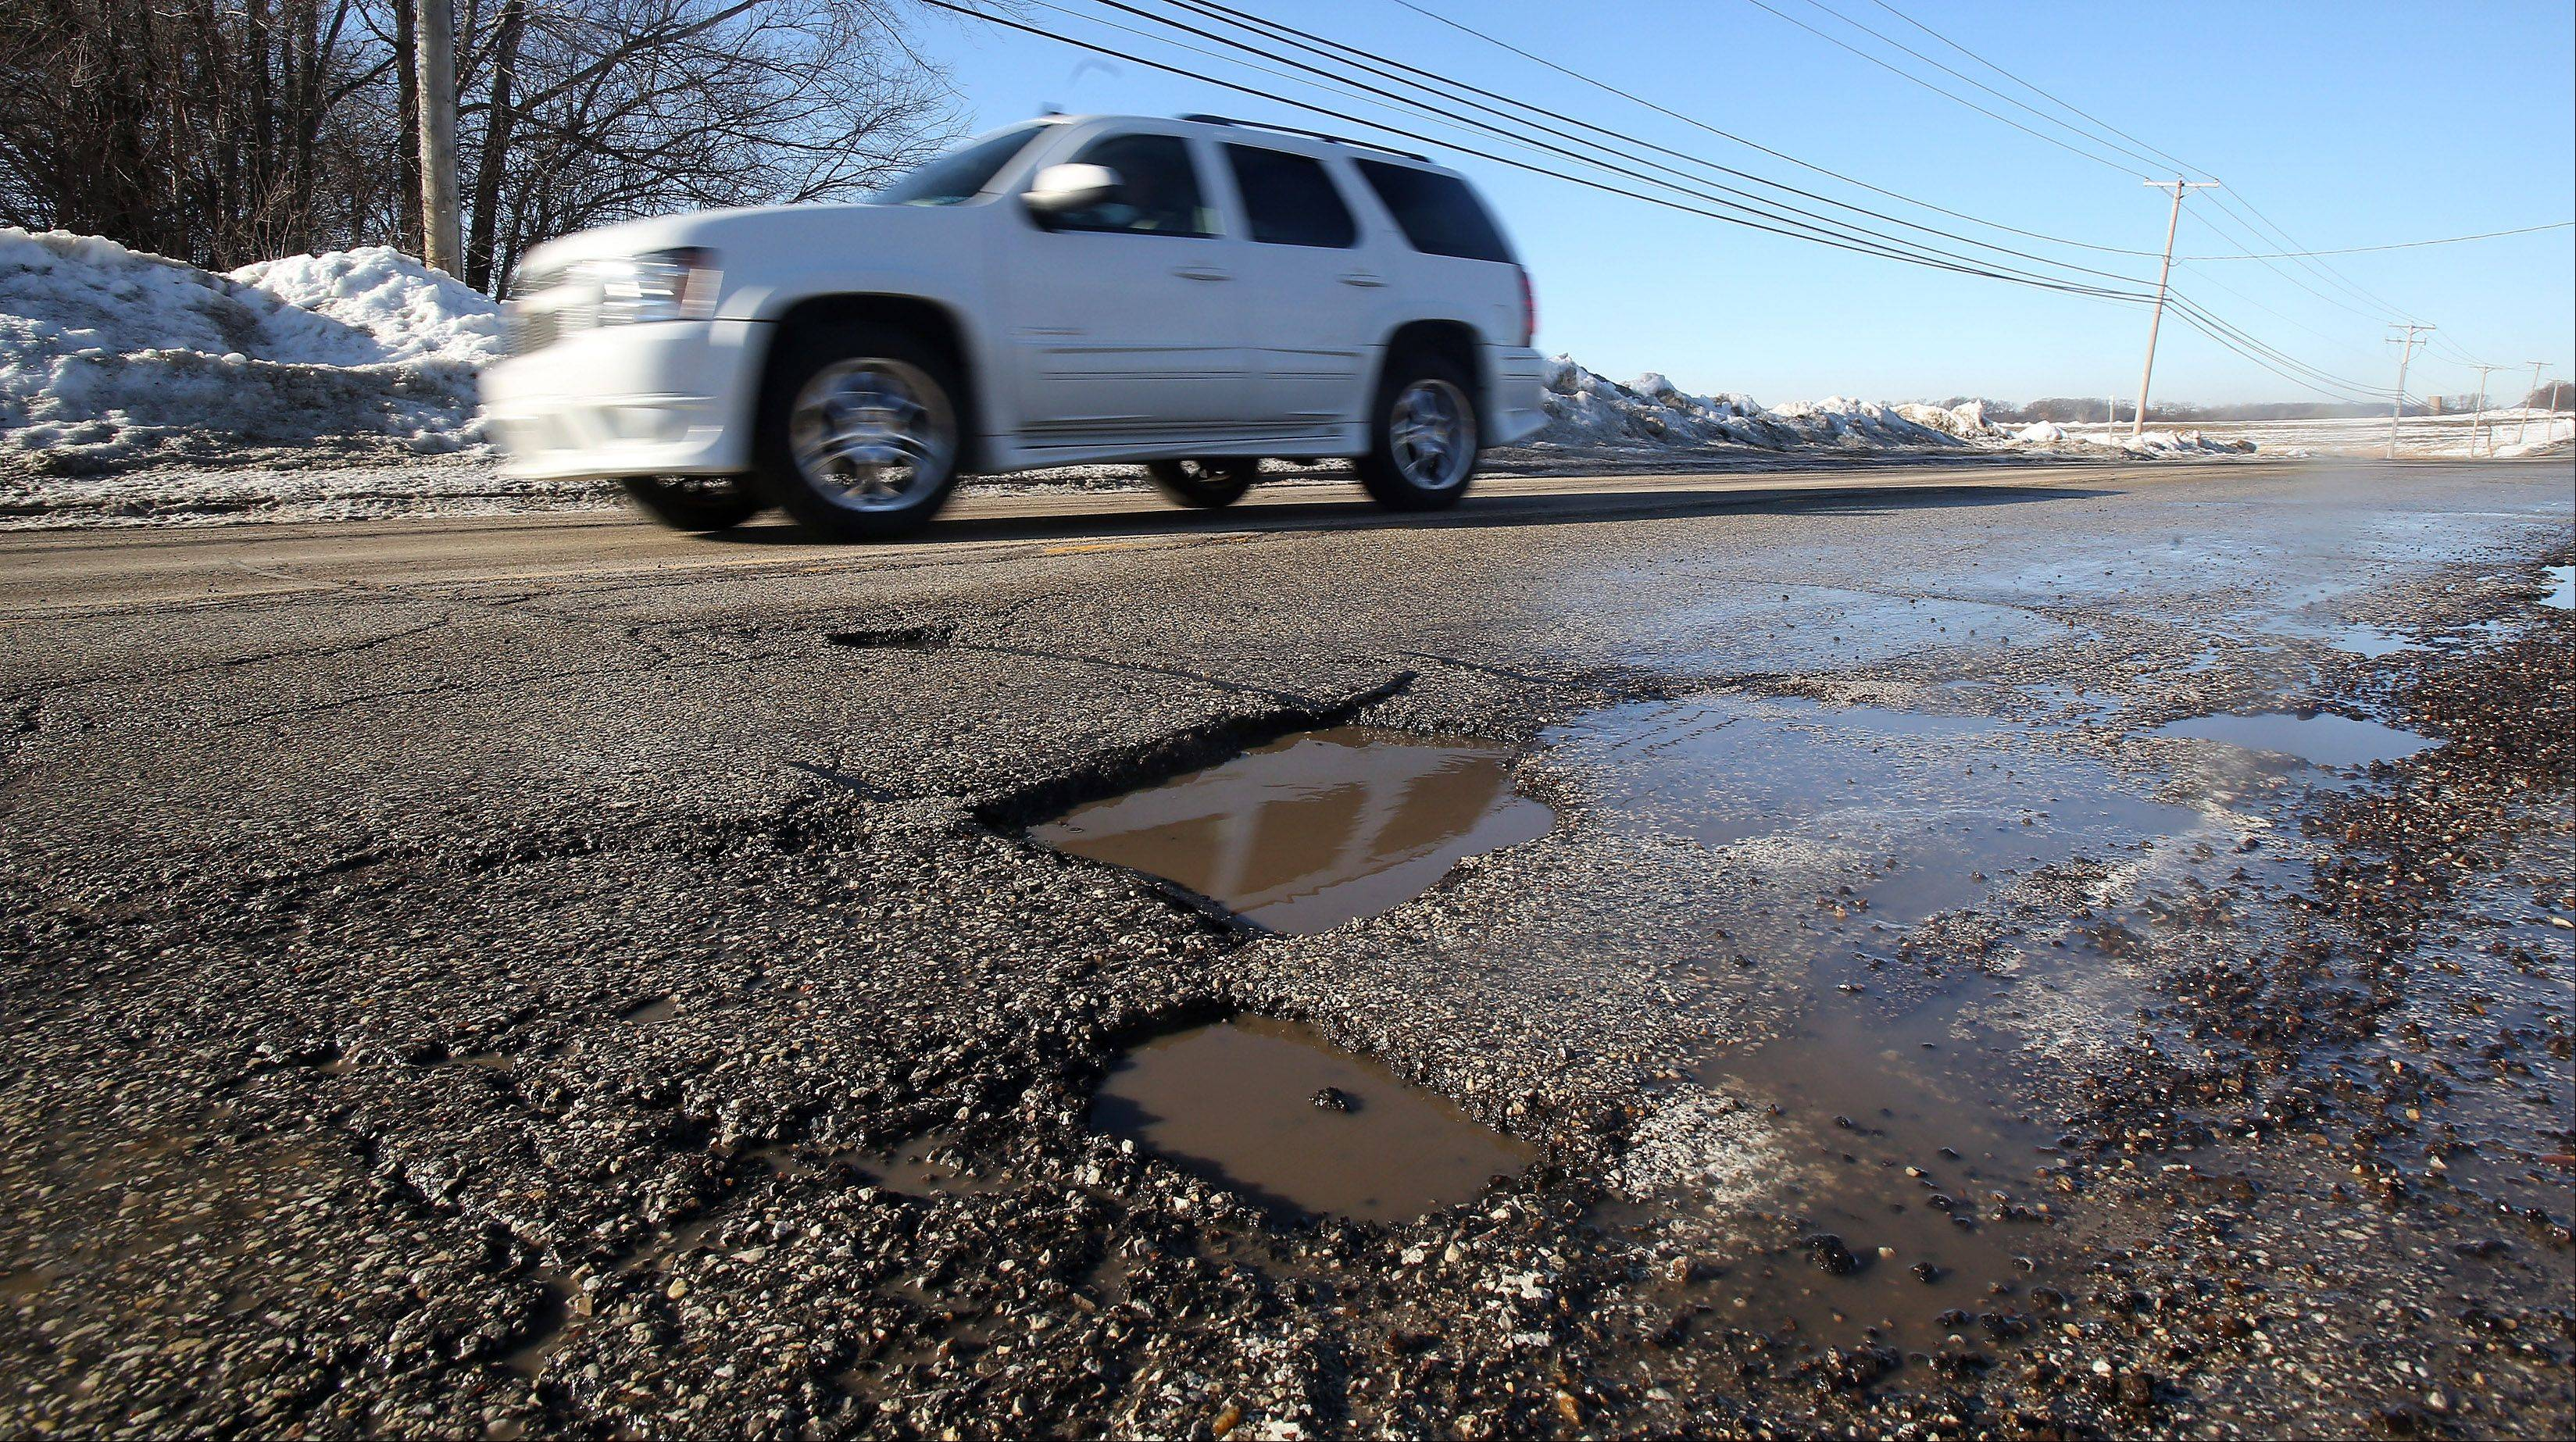 A truck passes by a pothole on Alleghany Road in Hainesville on Monday. After heavy snow and frigid conditions, roadways are experiencing large numbers of potholes in Lake County.